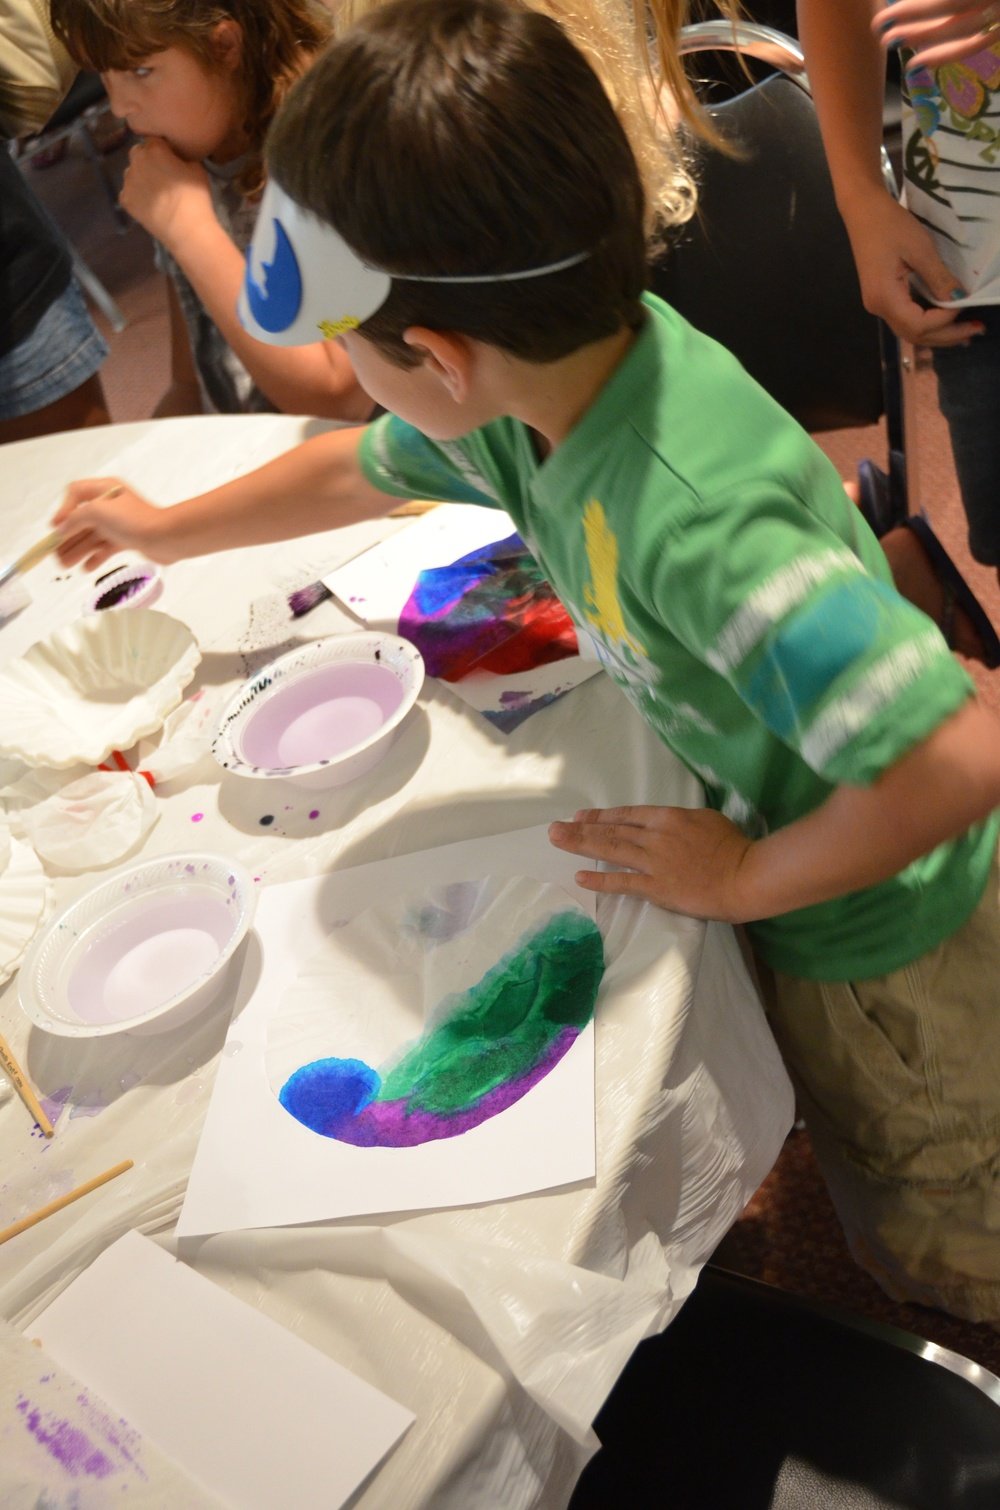 KIds ARt Church 9 12 2011   95311.jpg